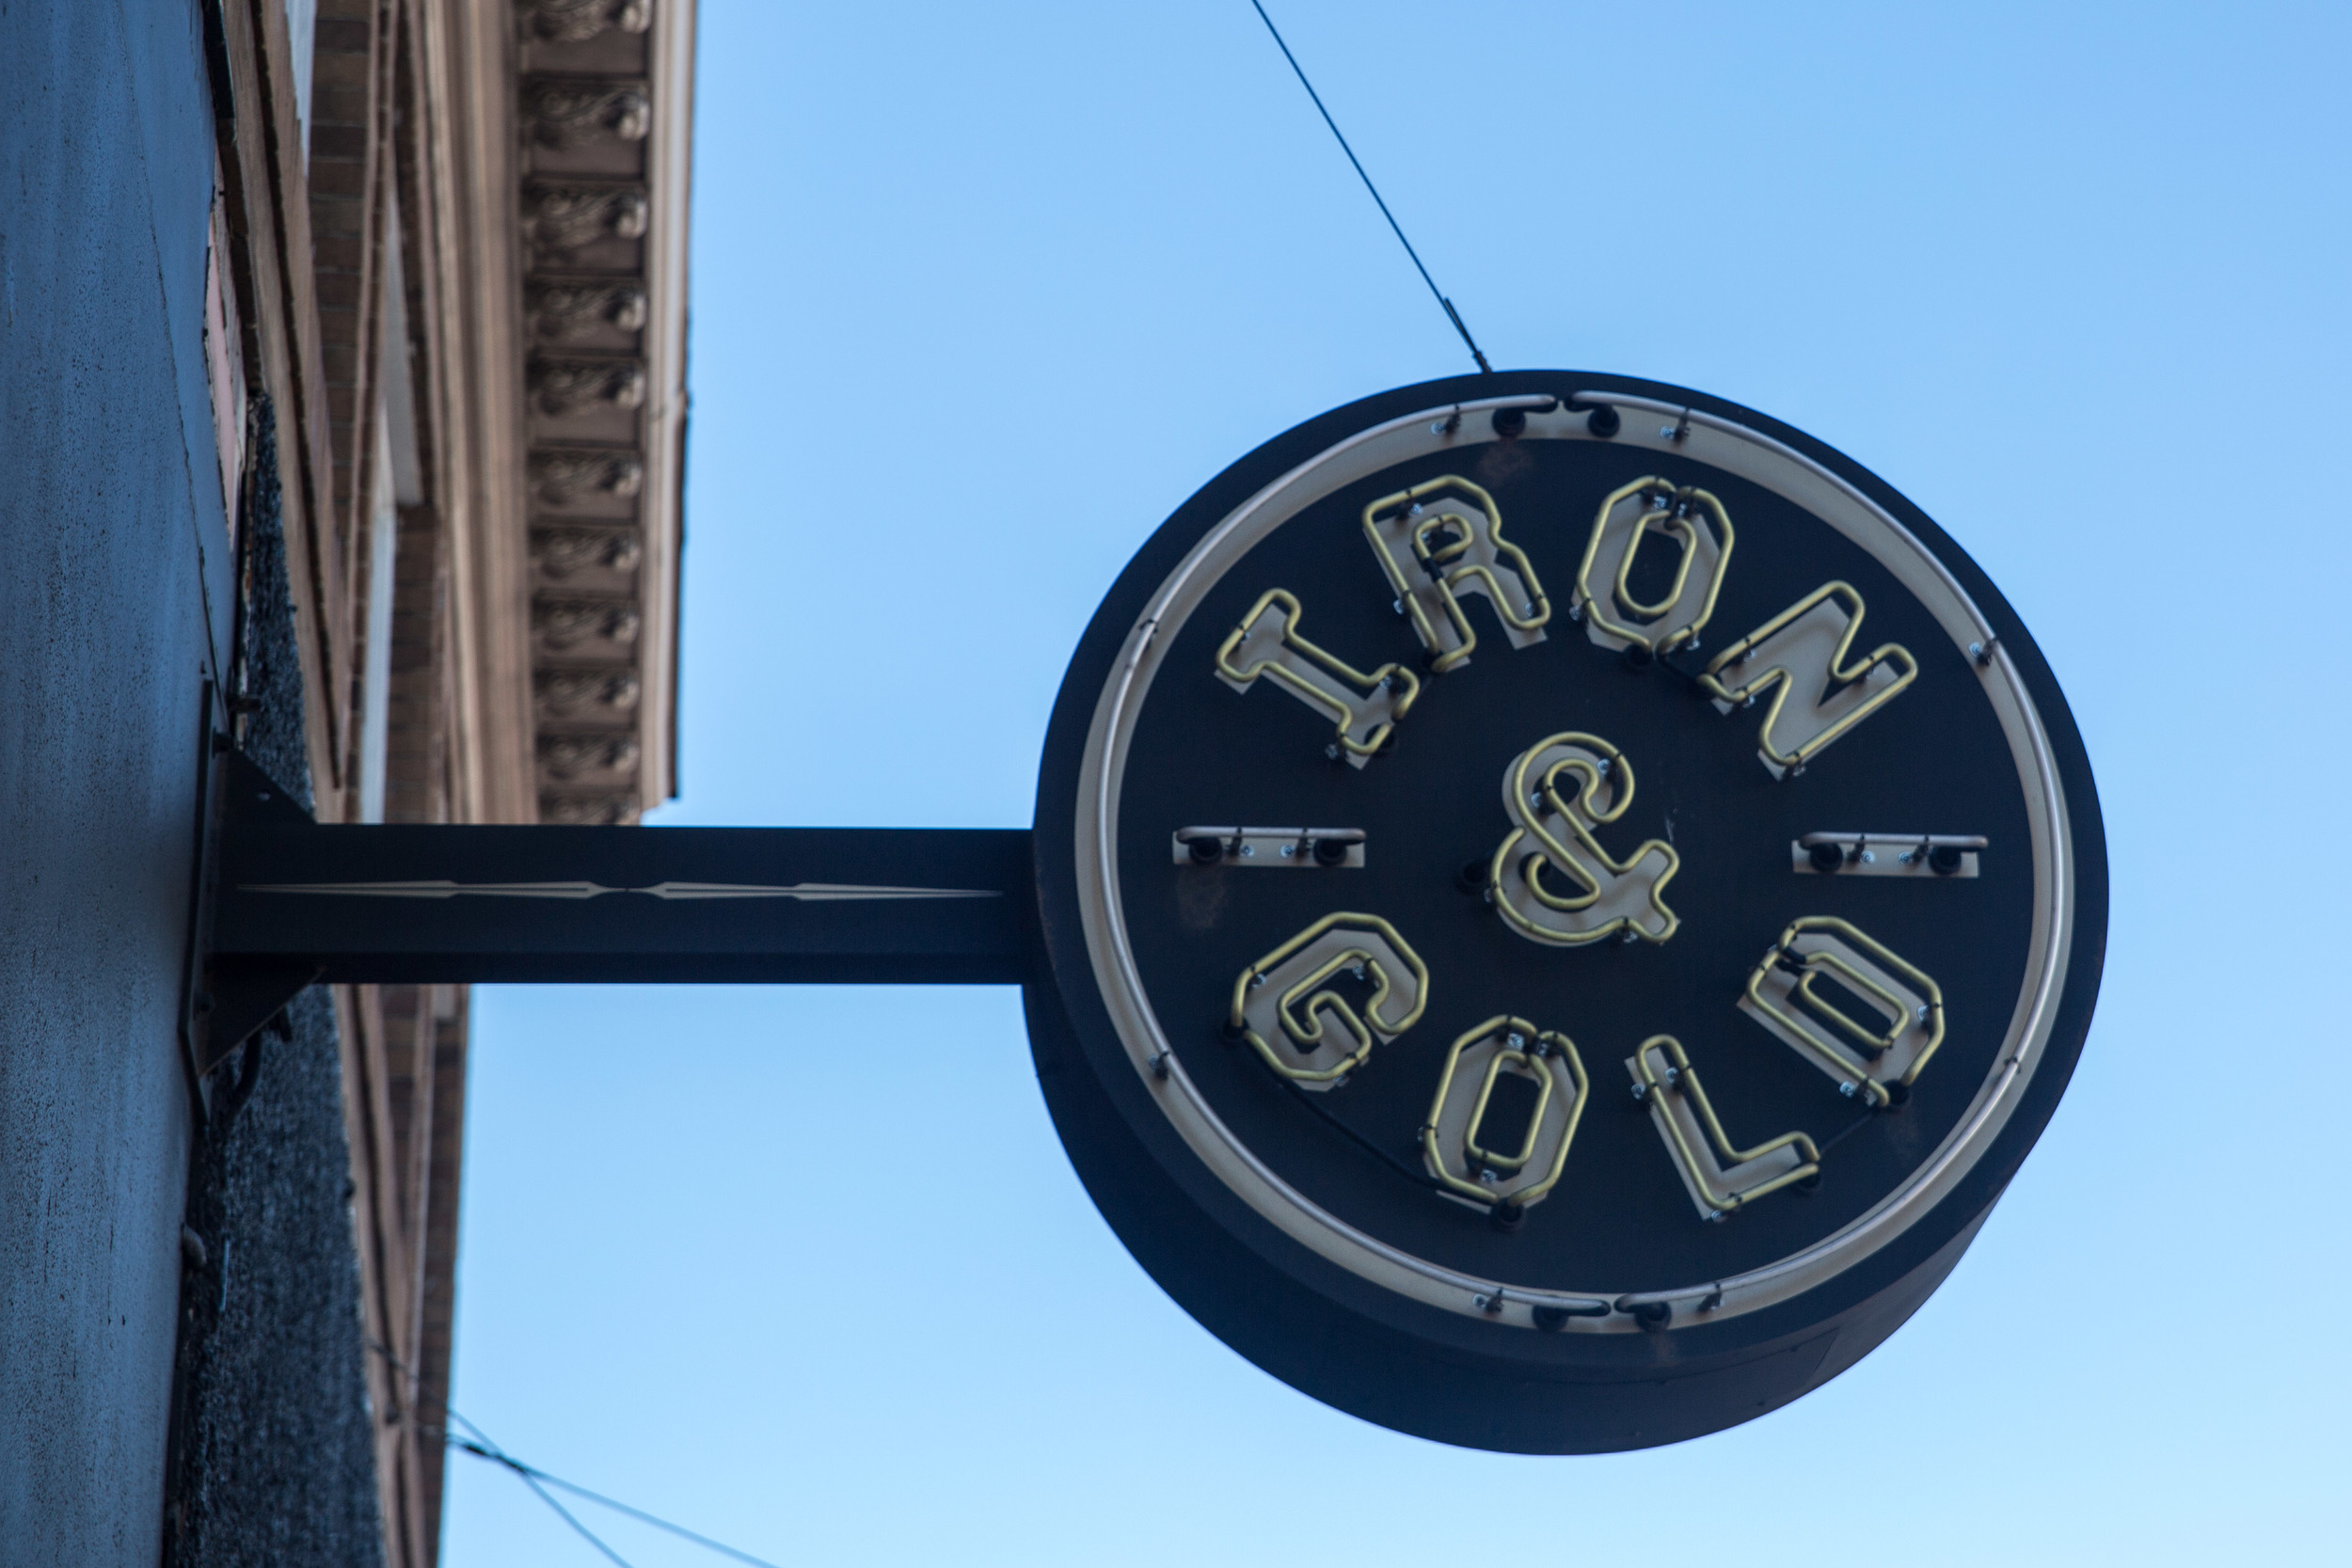 IRON & GOLD  - 3187 MISSION STREET - 415.824.1447